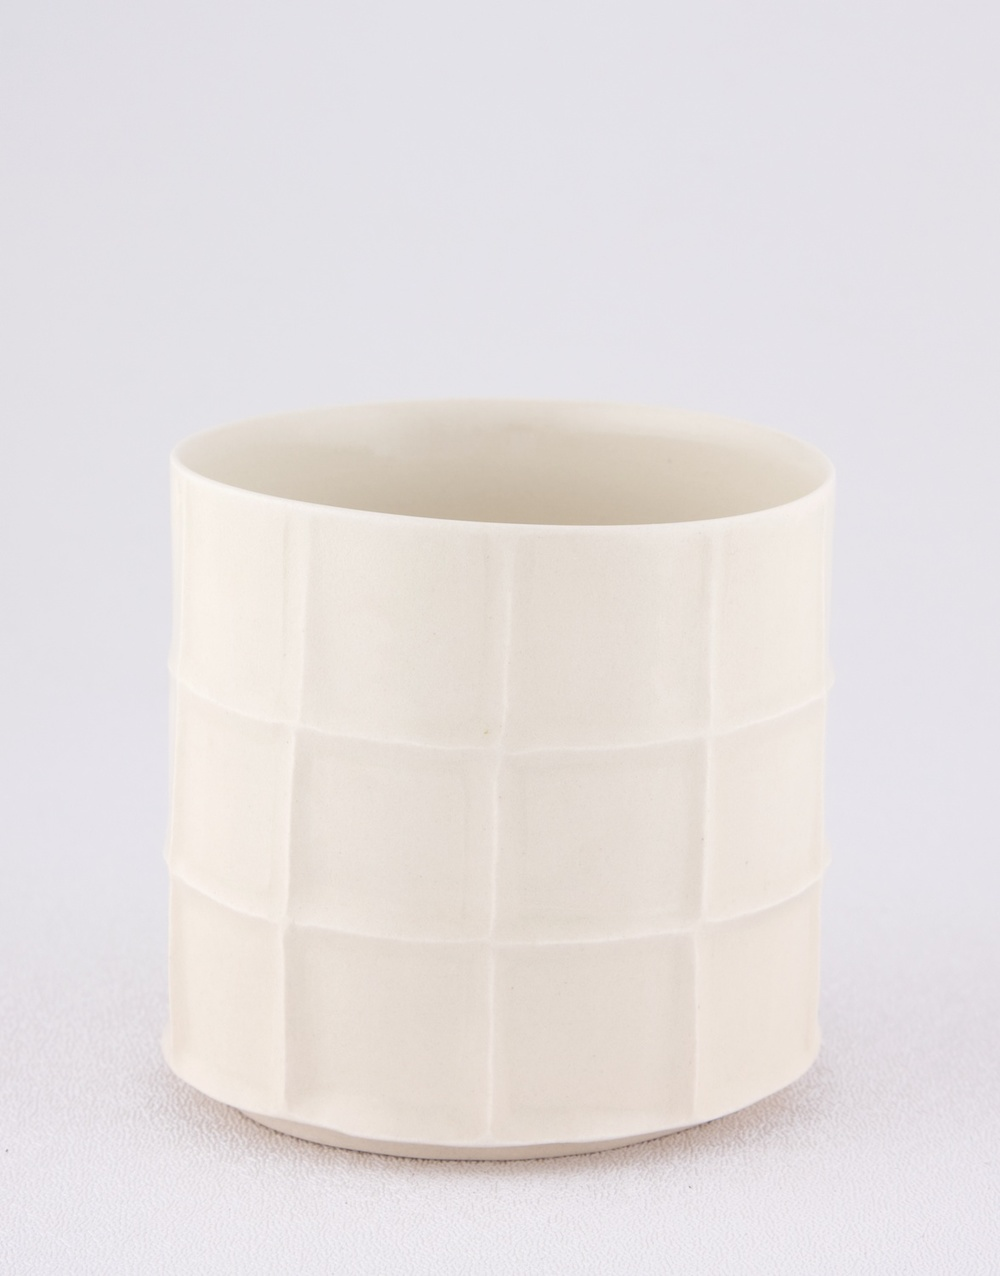 Shio Kusaka  Untitled (cup)  2009 Porcelain 3 ⅛h x 3 ¼w in SK012